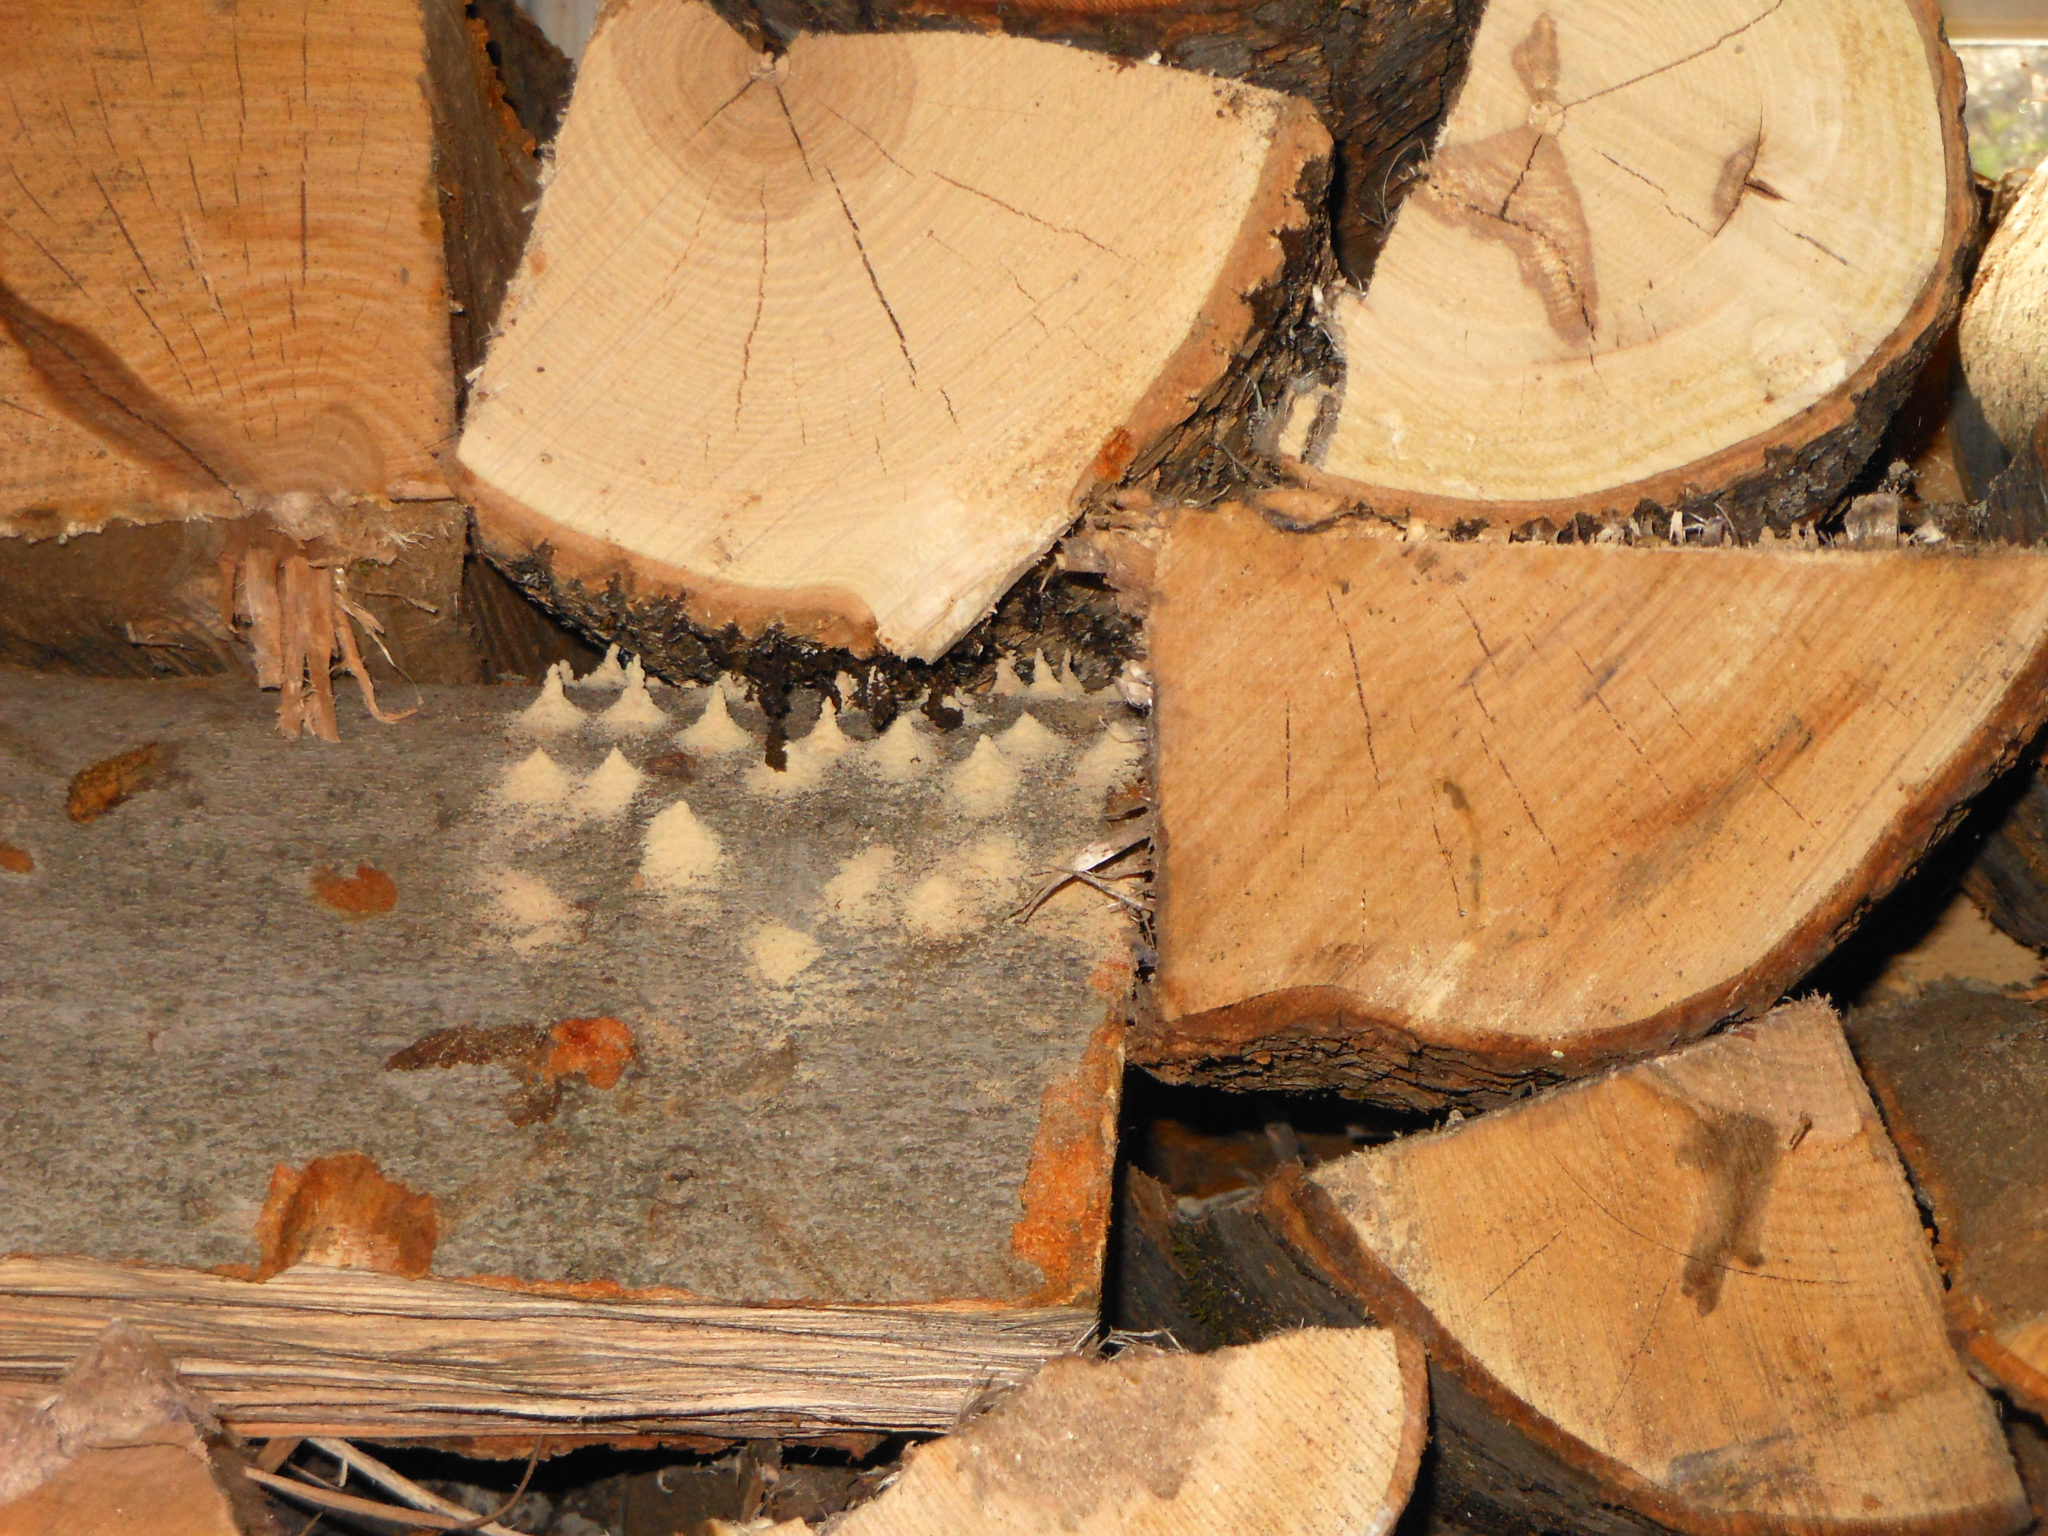 Bugs in firewood? Here's what you need to know